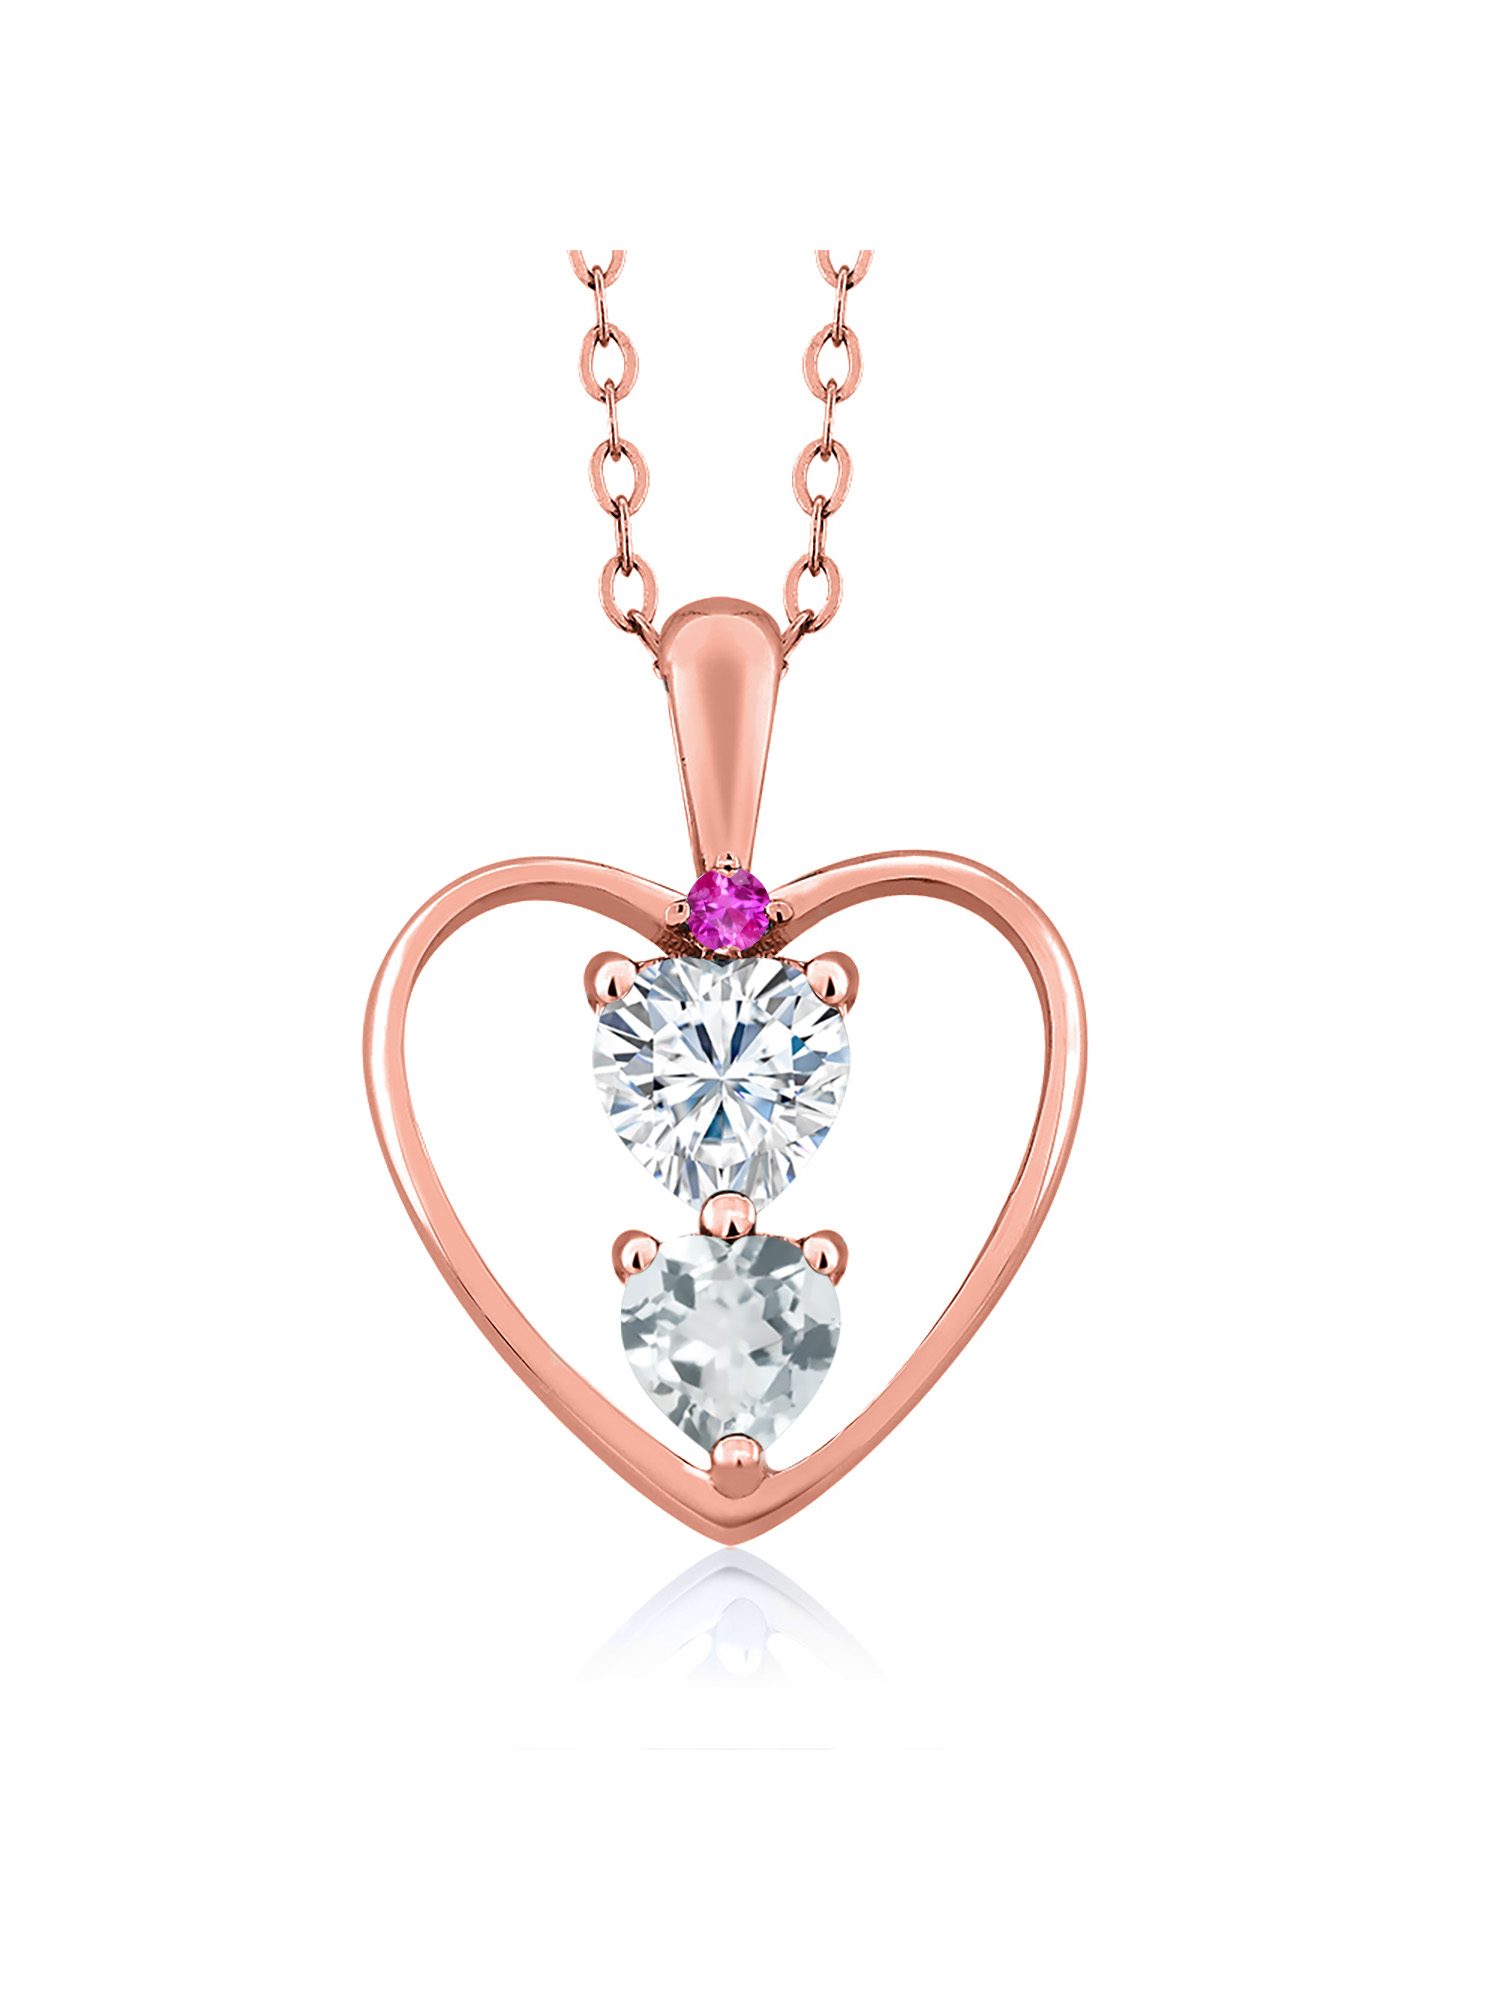 GHI DEW 18K Yellow Gold Plated Silver Pendant Forever Brilliant Created Moissanite by Charles /& Colvard and Aquamarine Heart Shape 0.50ct